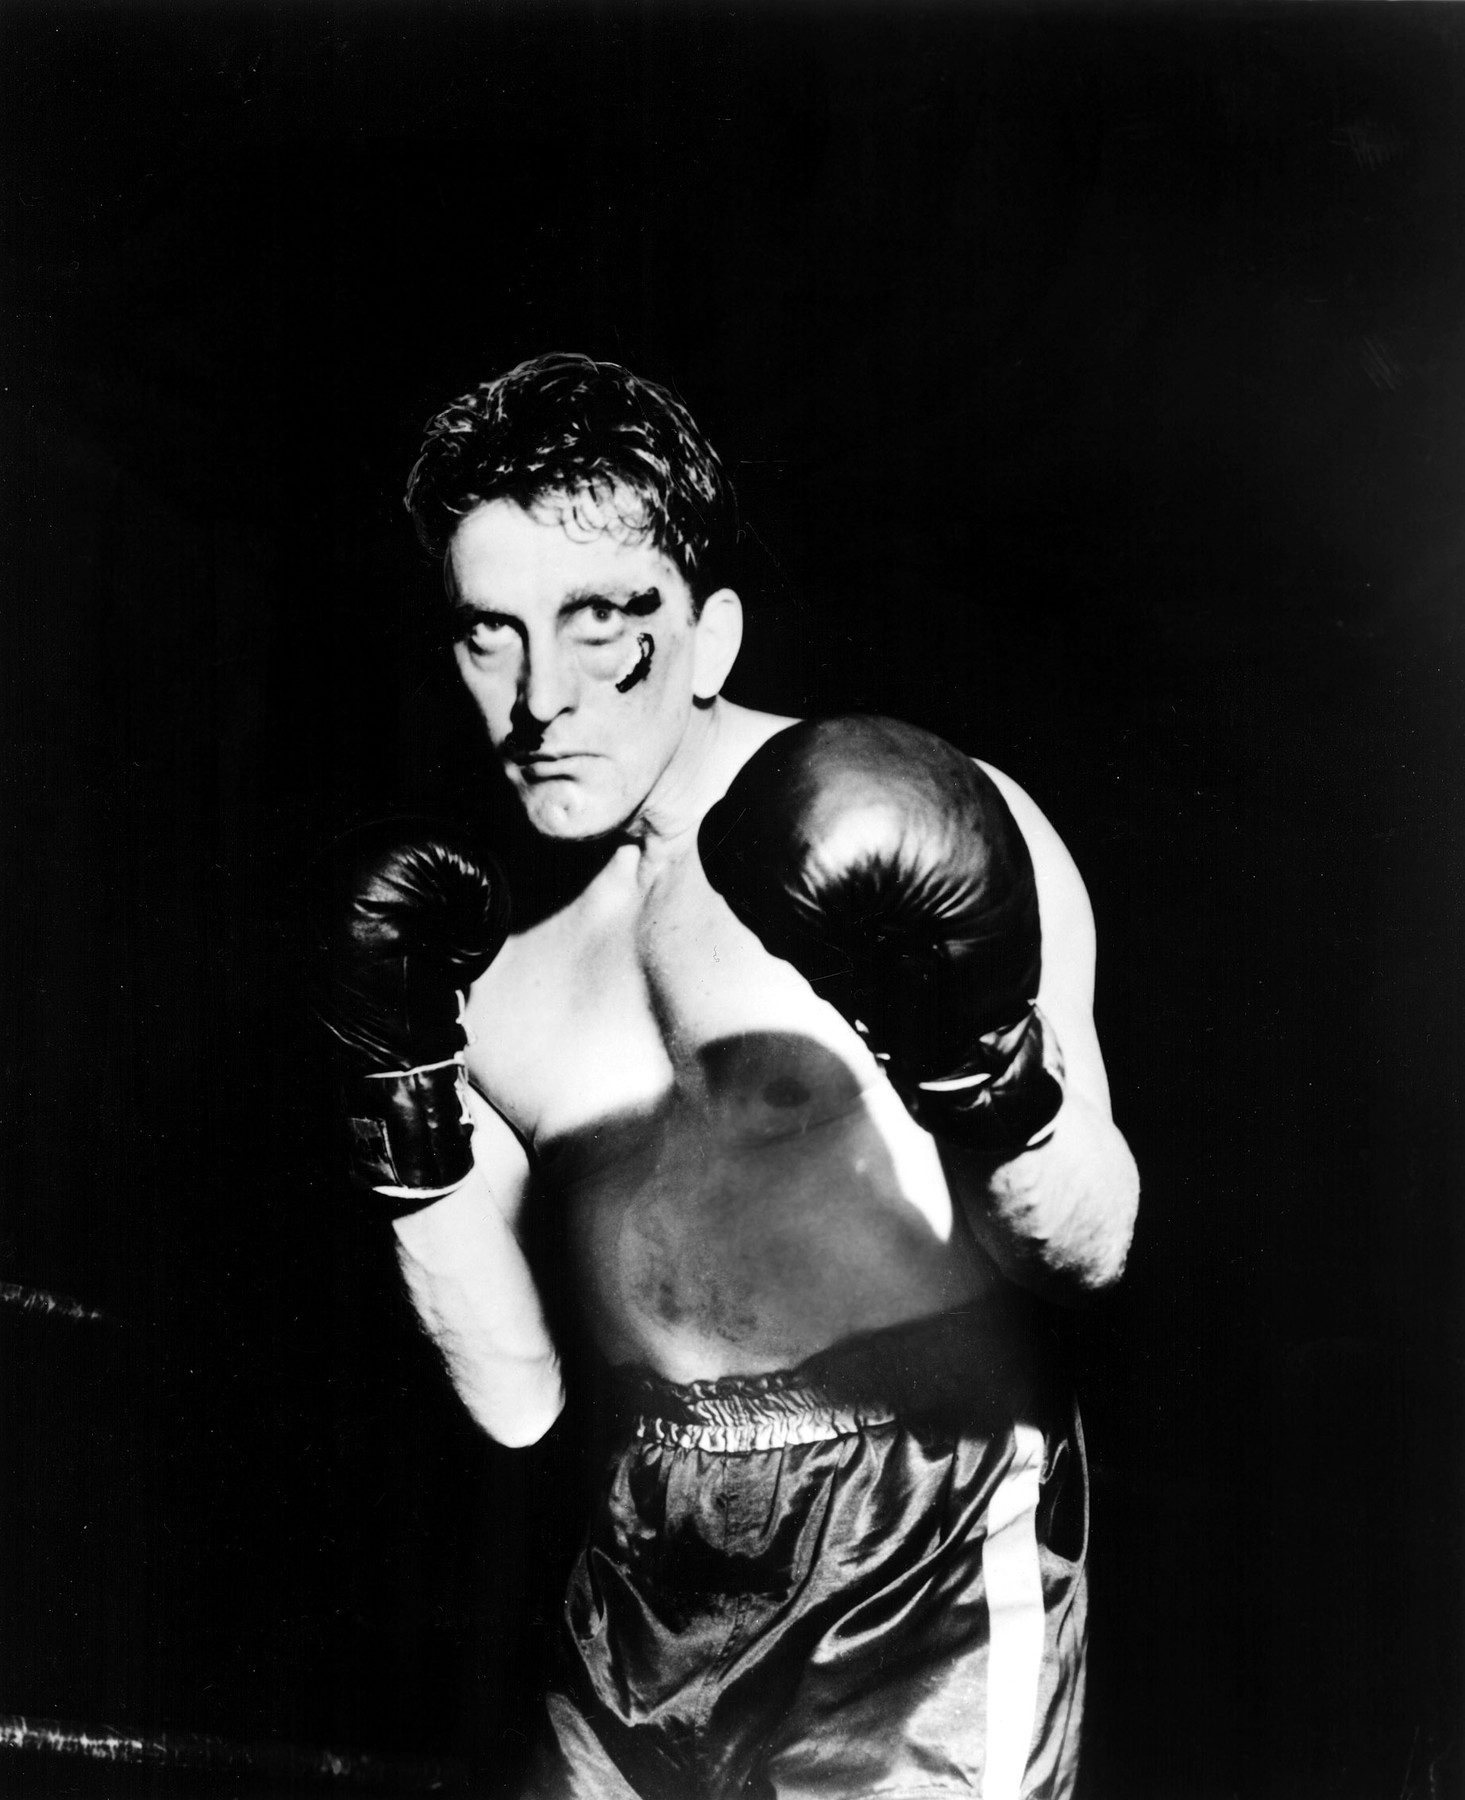 CHAMPION, Kirk Douglas, 1949, Image: 98261668, License: Rights-managed, Restrictions: For usage credit please use; Courtesy Everett Collection, Model Release: no, Credit line: Courtesy Everett Collection / Everett / Profimedia